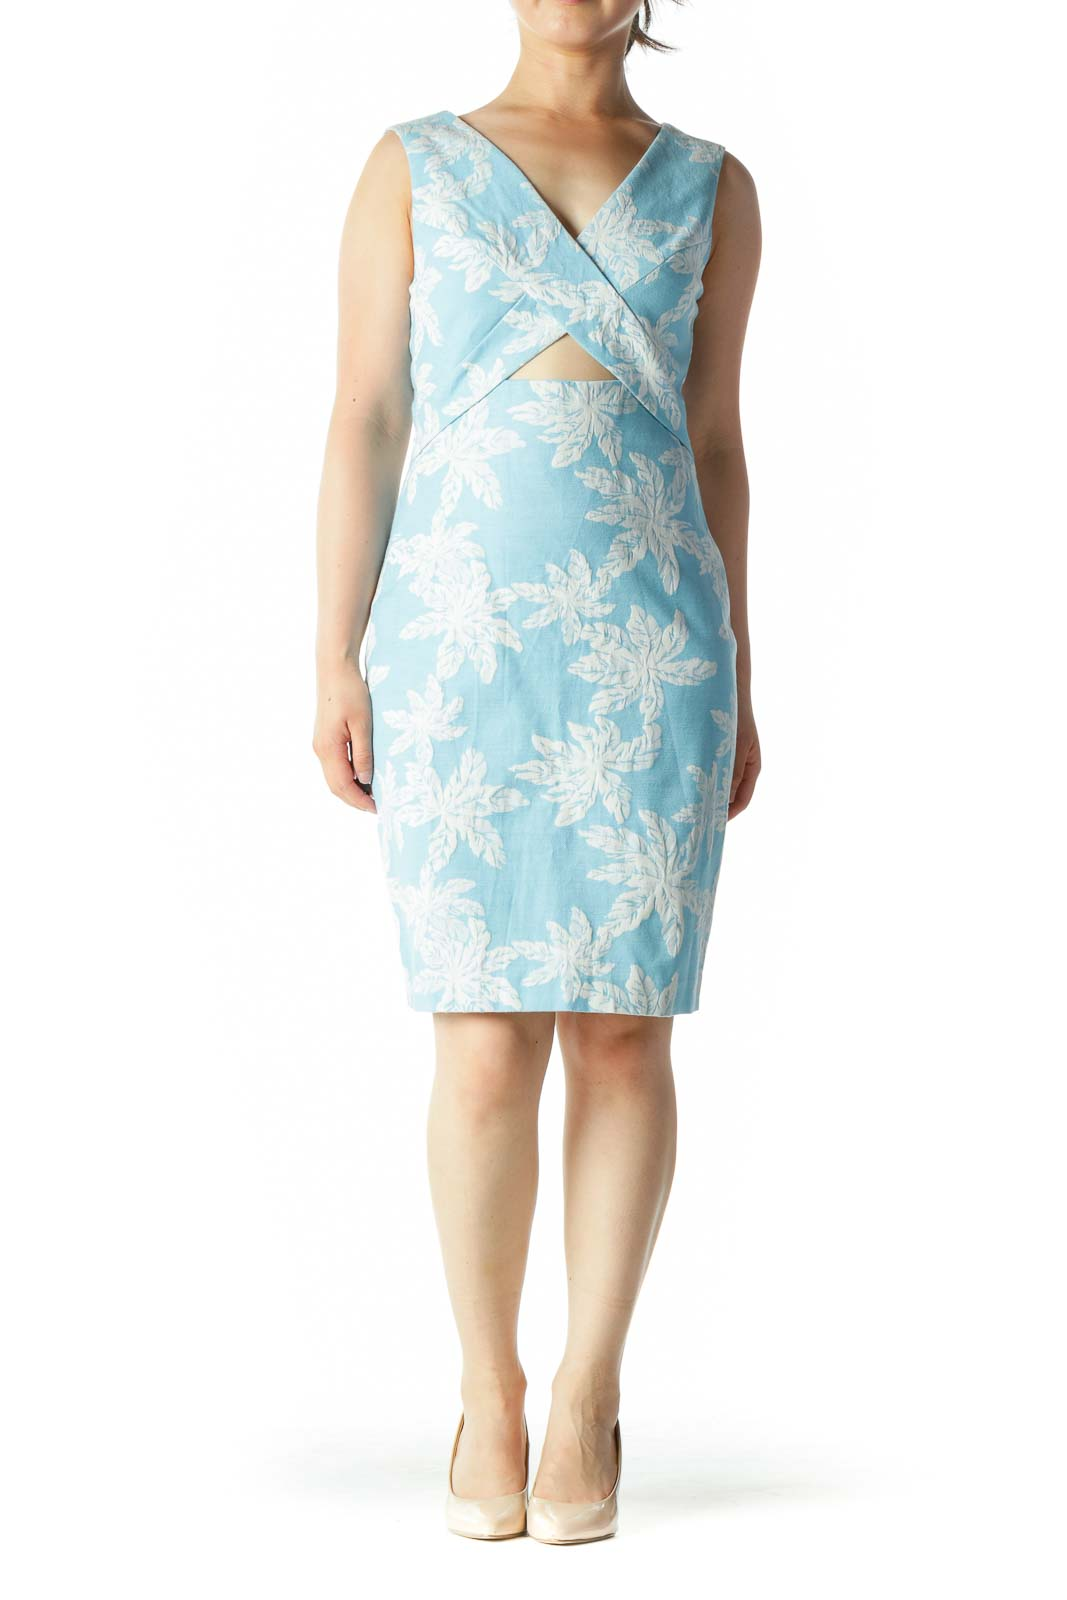 Blue White Jacquard Floral-Texture V-Neck Front Cut Out Day Dress